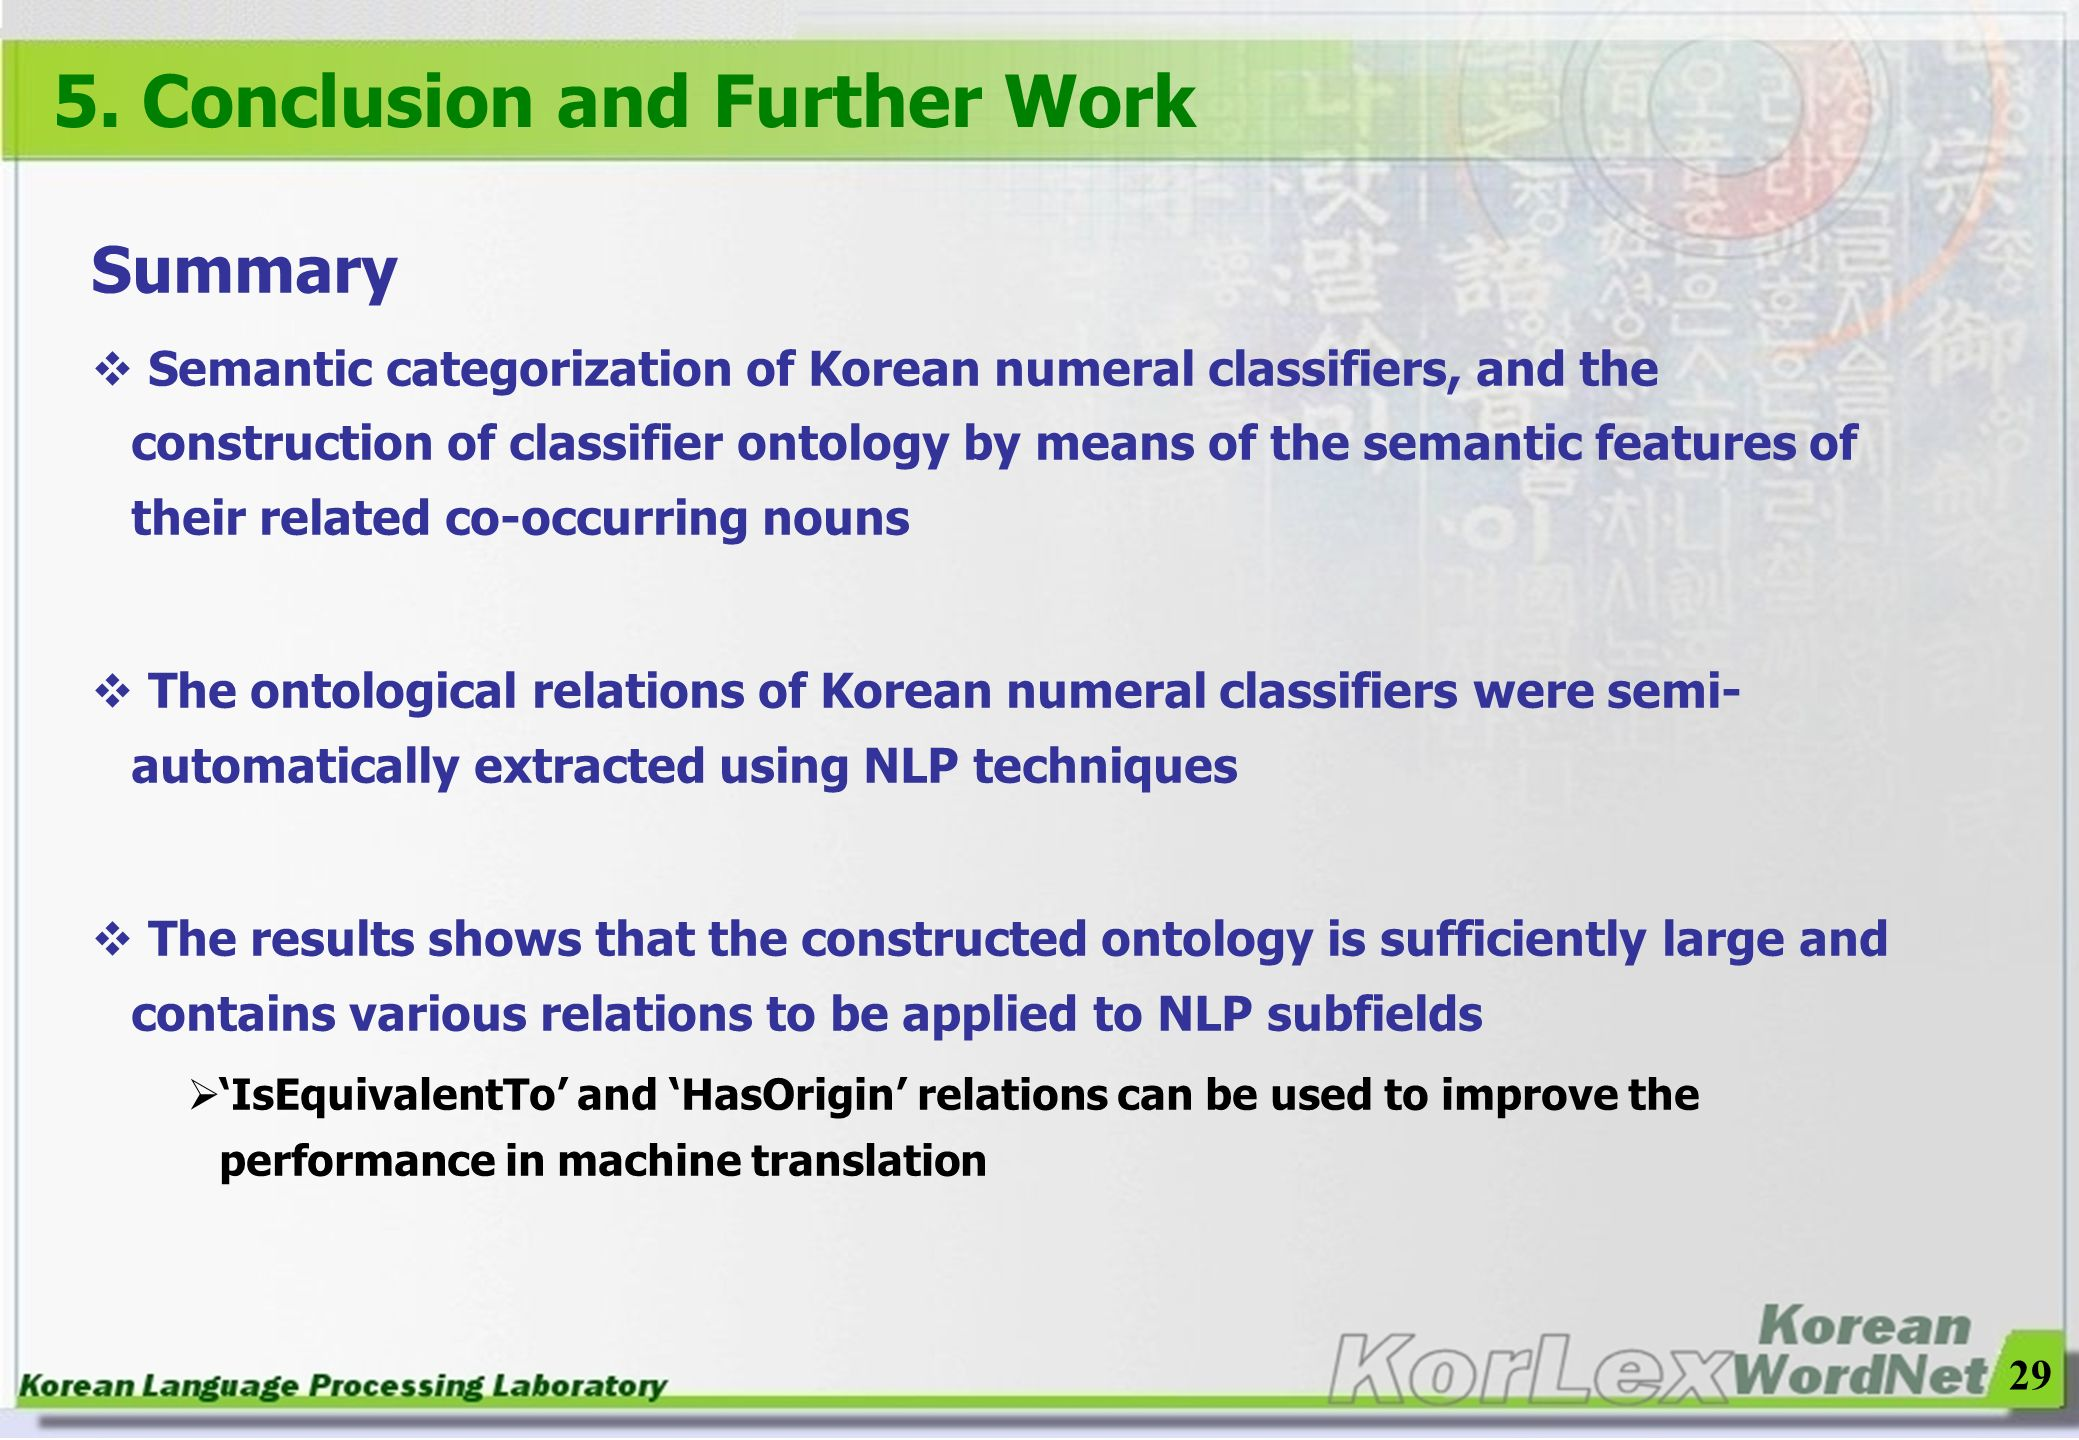 5. Conclusion and Further Work